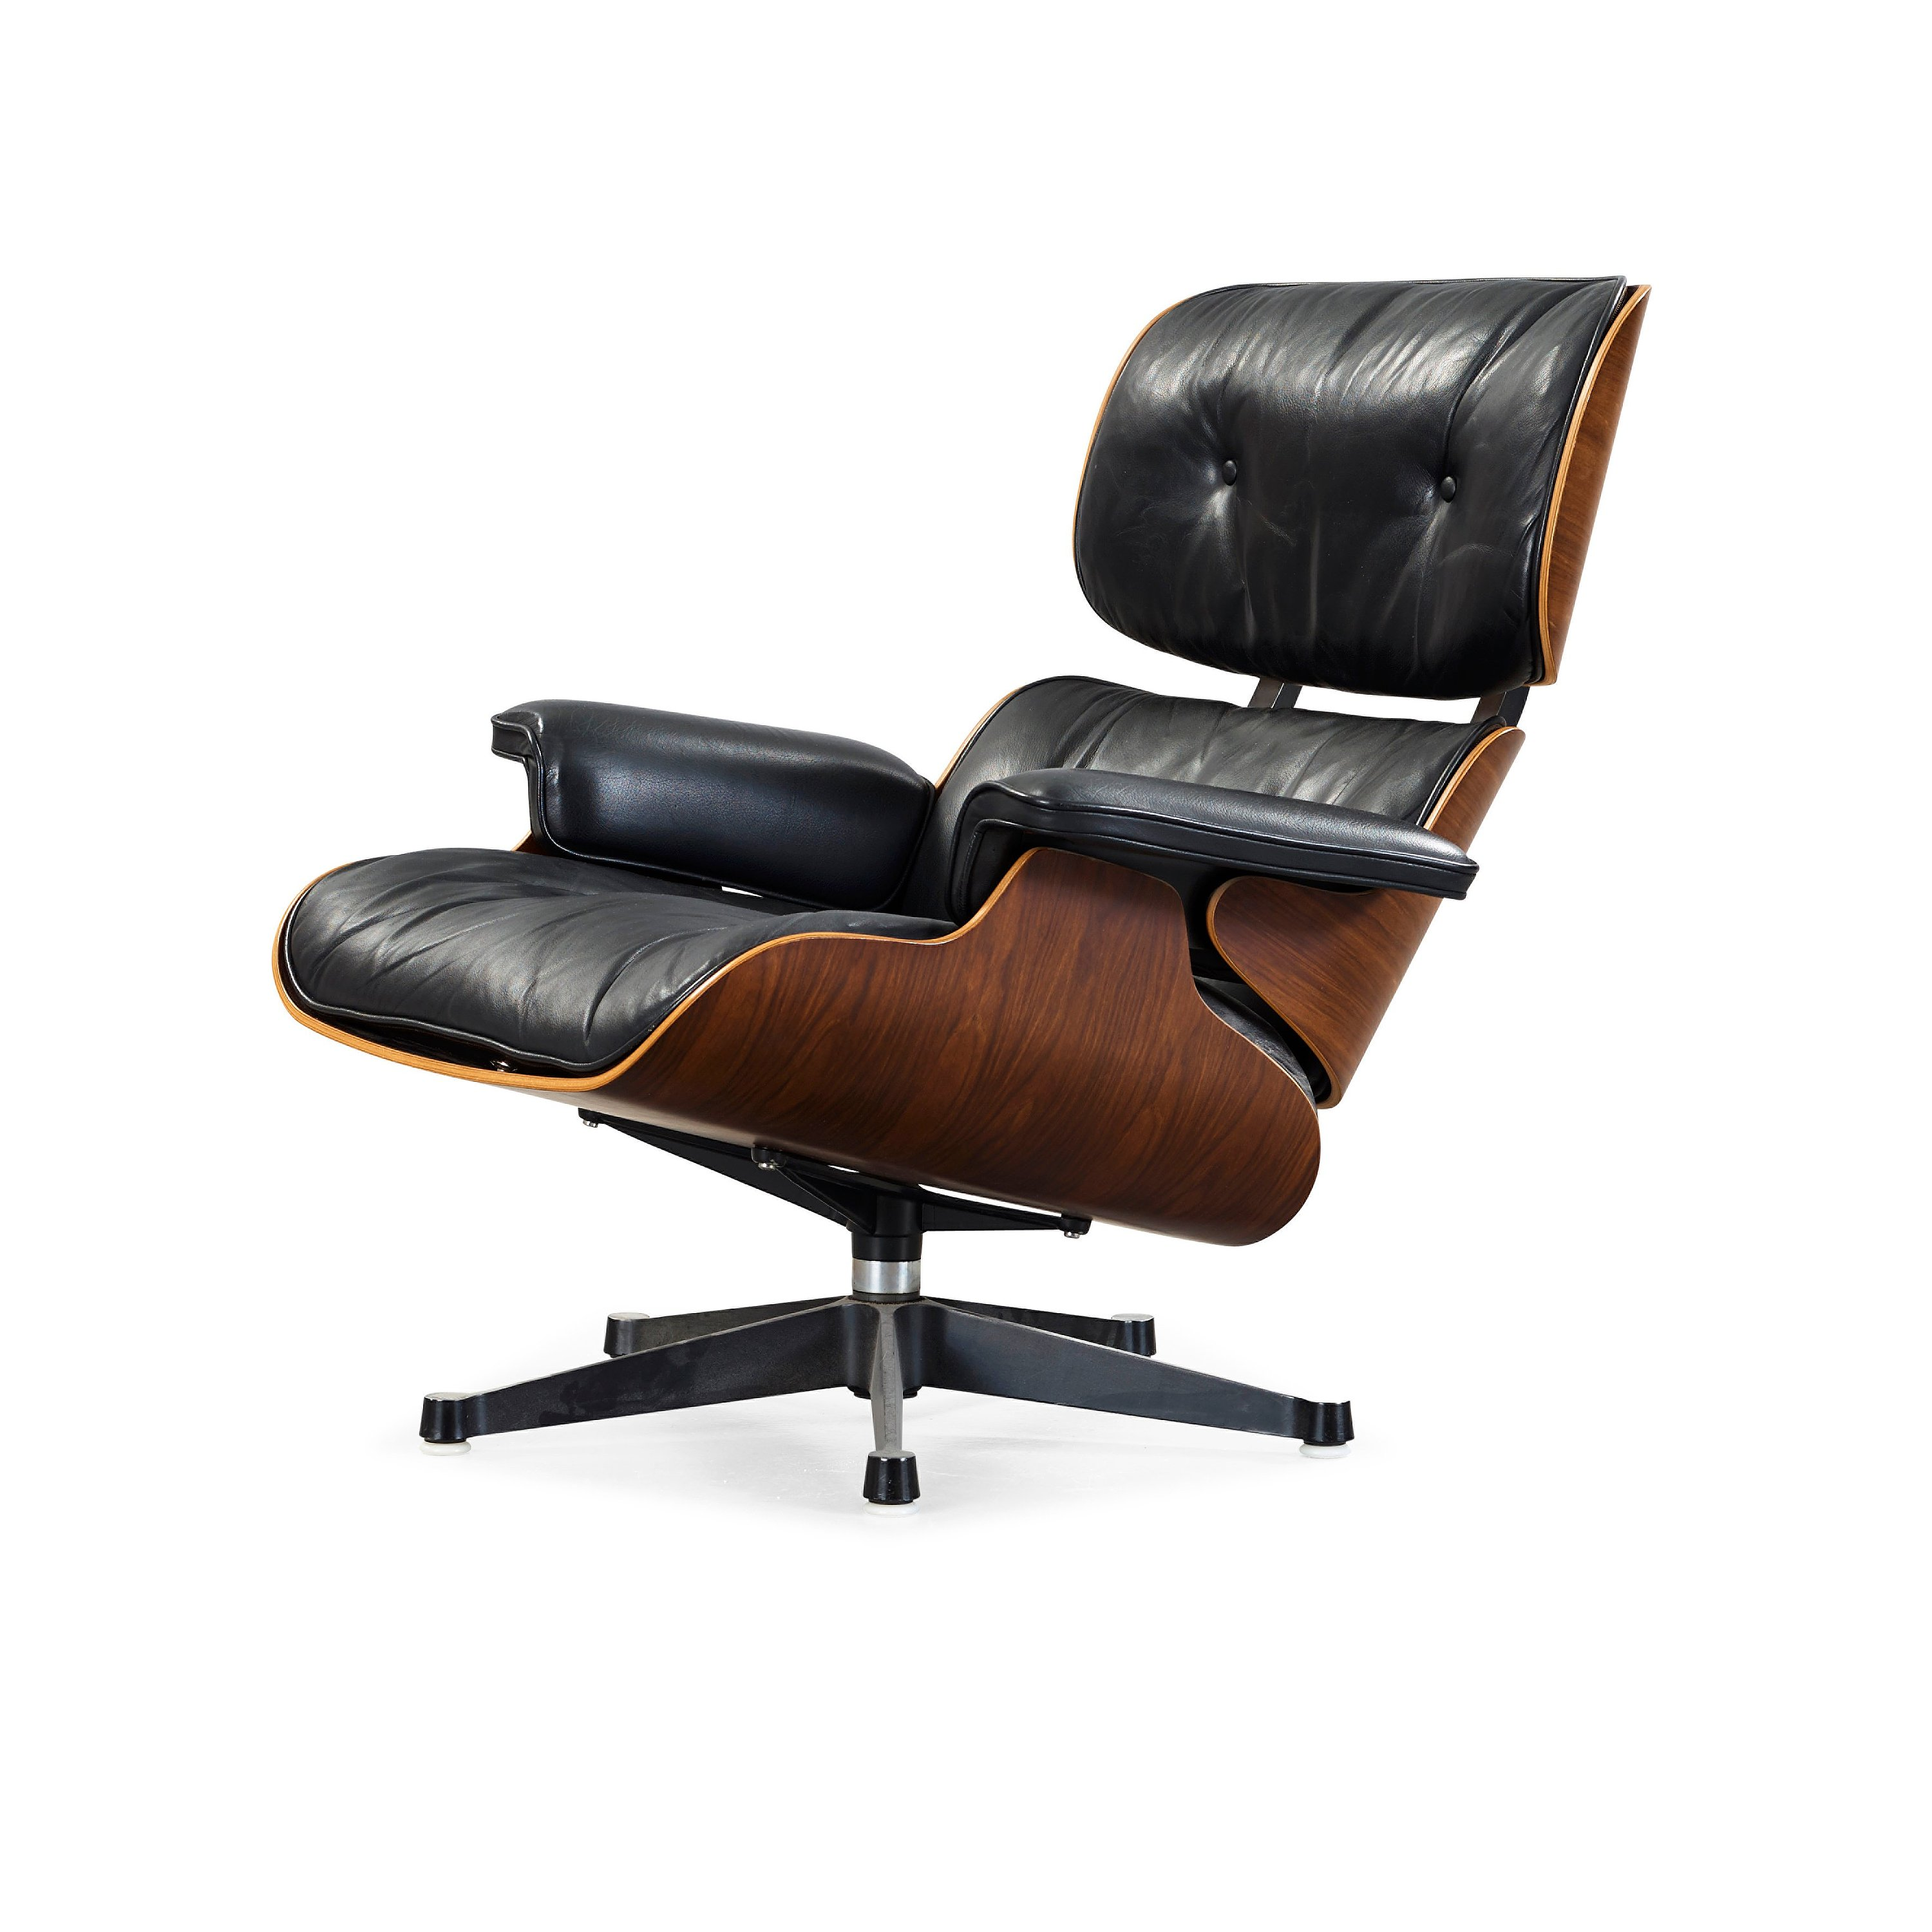 Vitra Eames Lounge Chair A Charles Ray Eames Lounge Chair Vitra Bukowskis